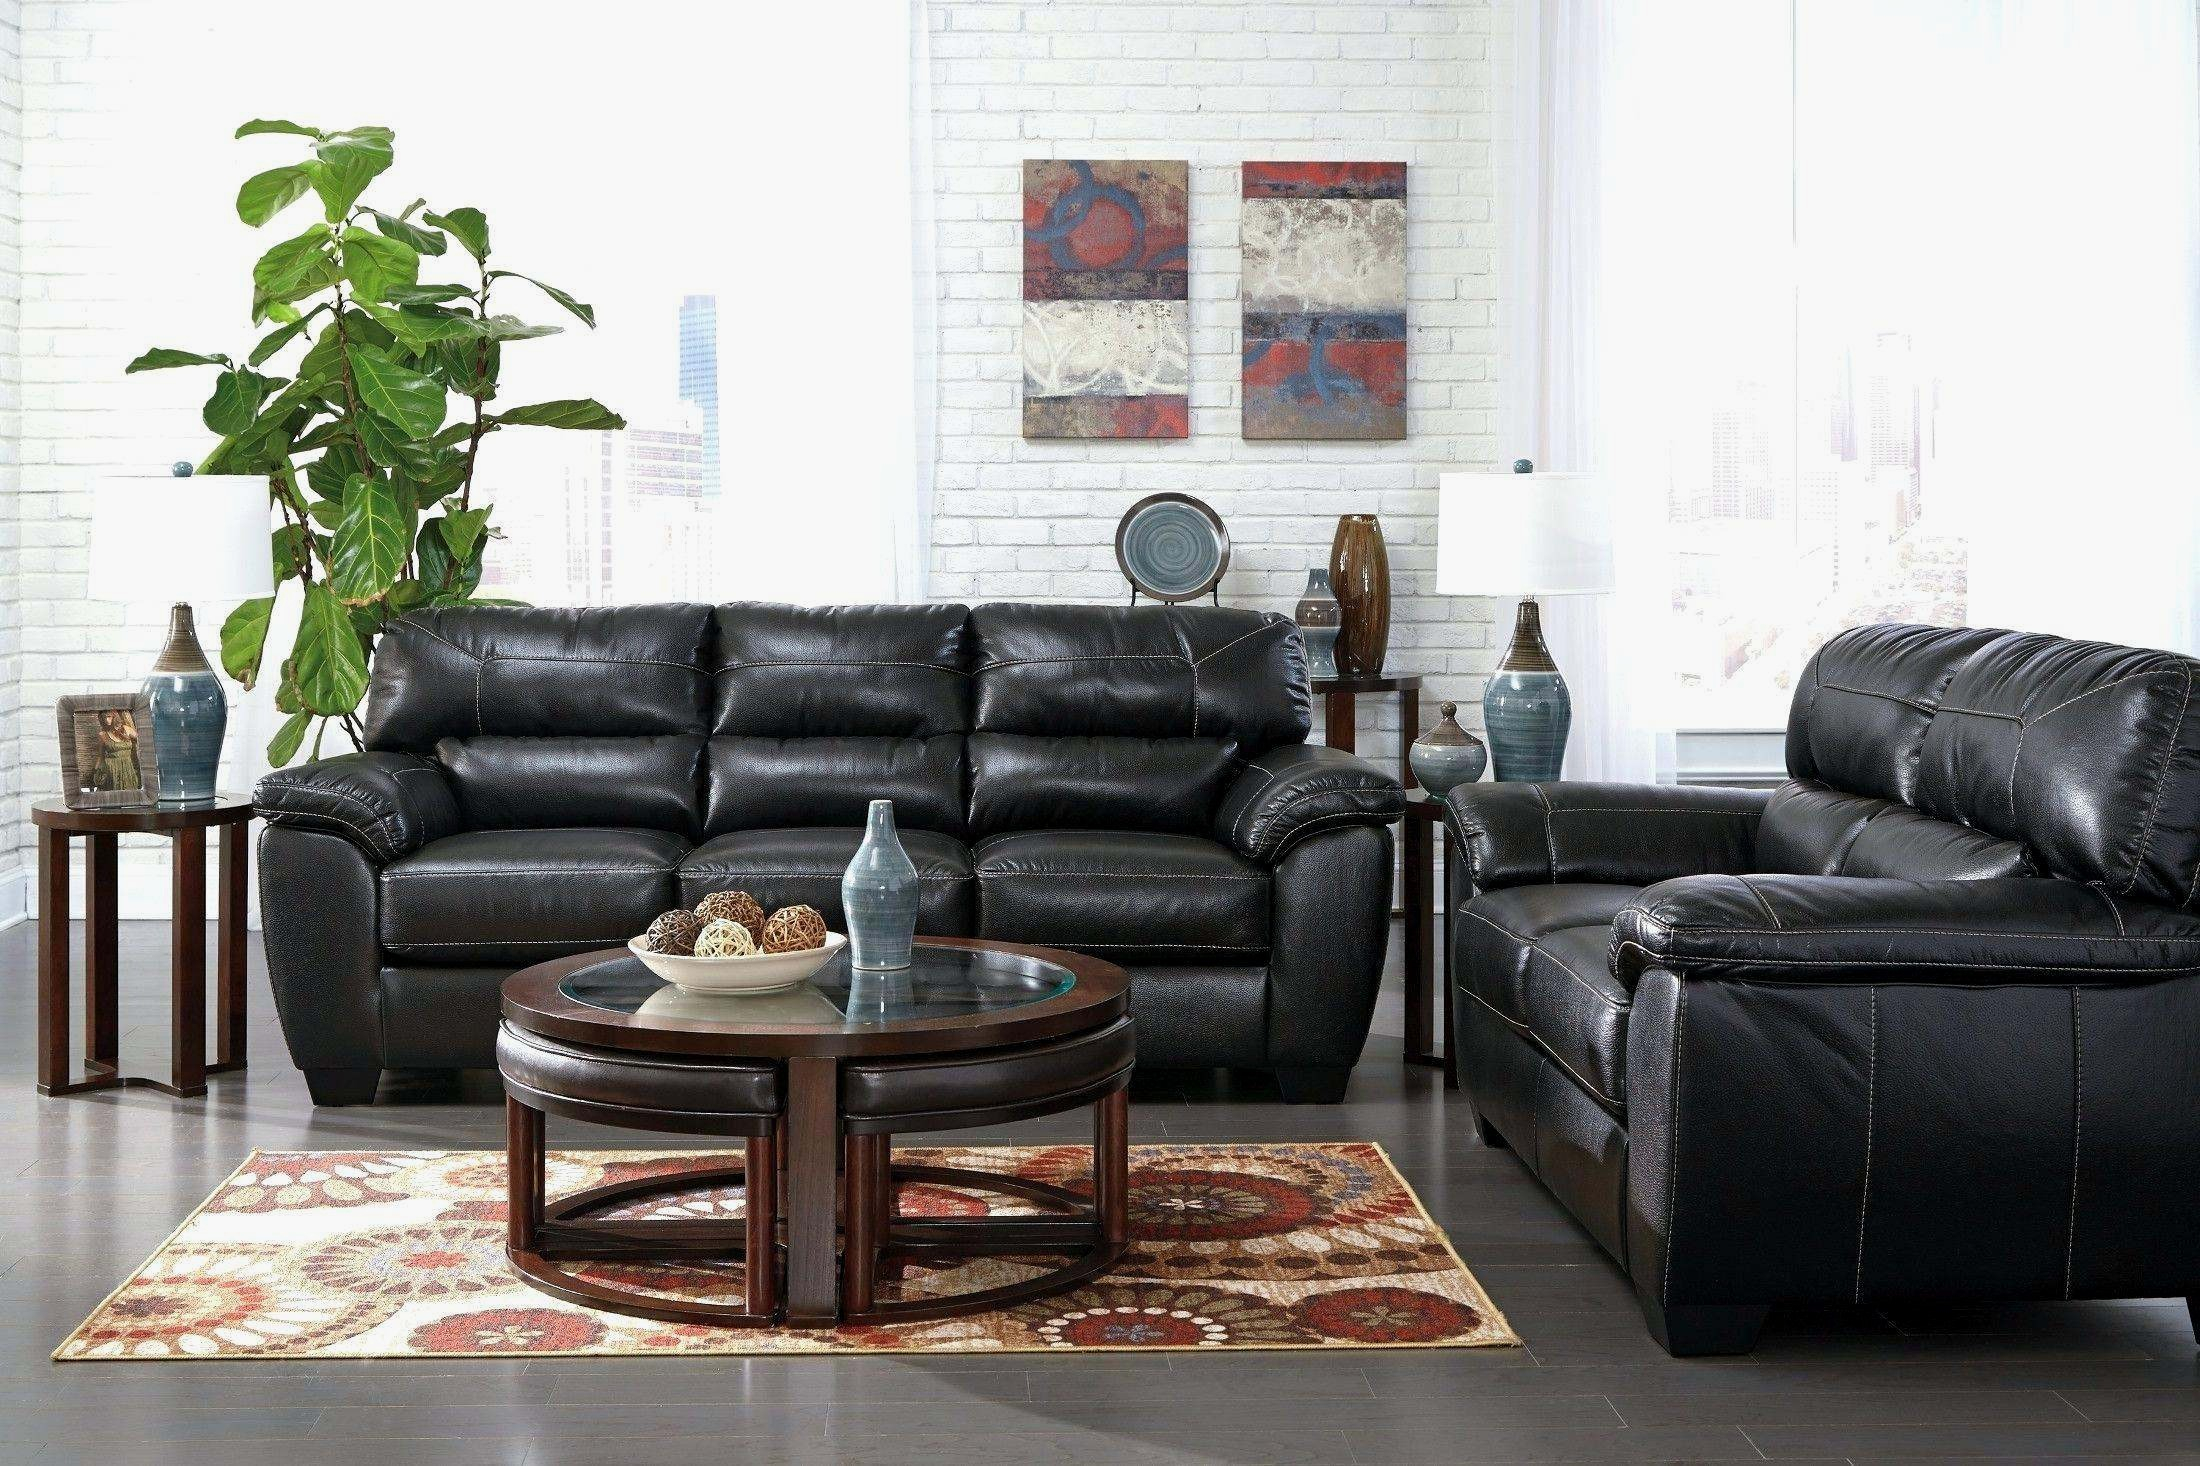 Leather Sofas Under 500 Best Of Cheap Living Room Sets For Sale inside Cheap Living Room Set Under 500